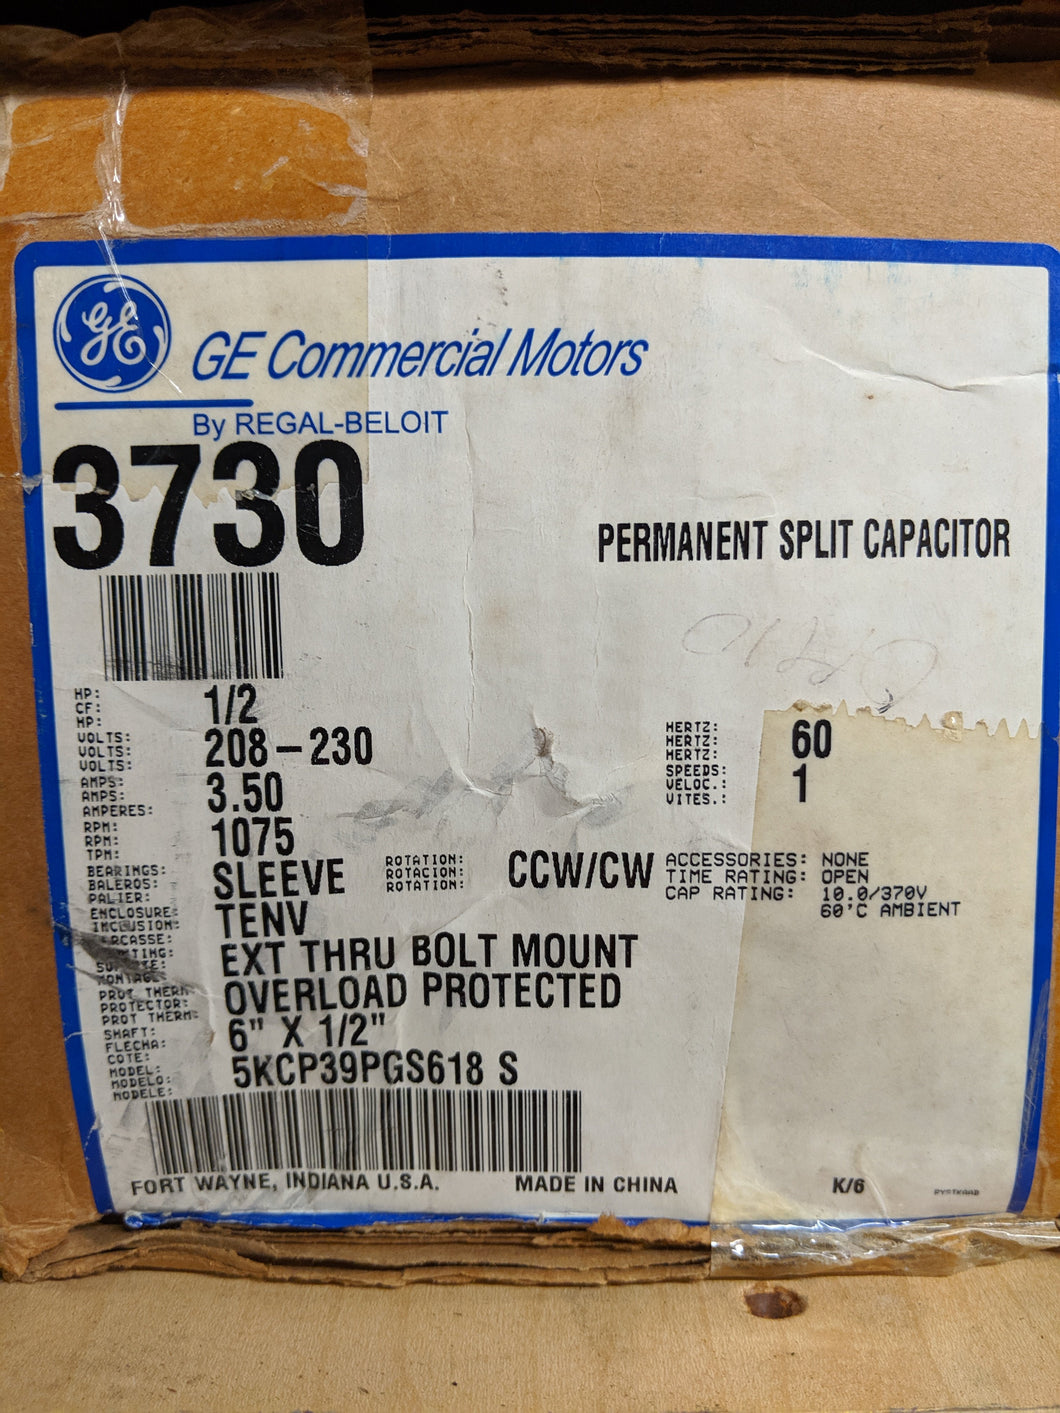 GE 3730, 1/2 HP, 208-230 Volts, 5KCP39PGS618S